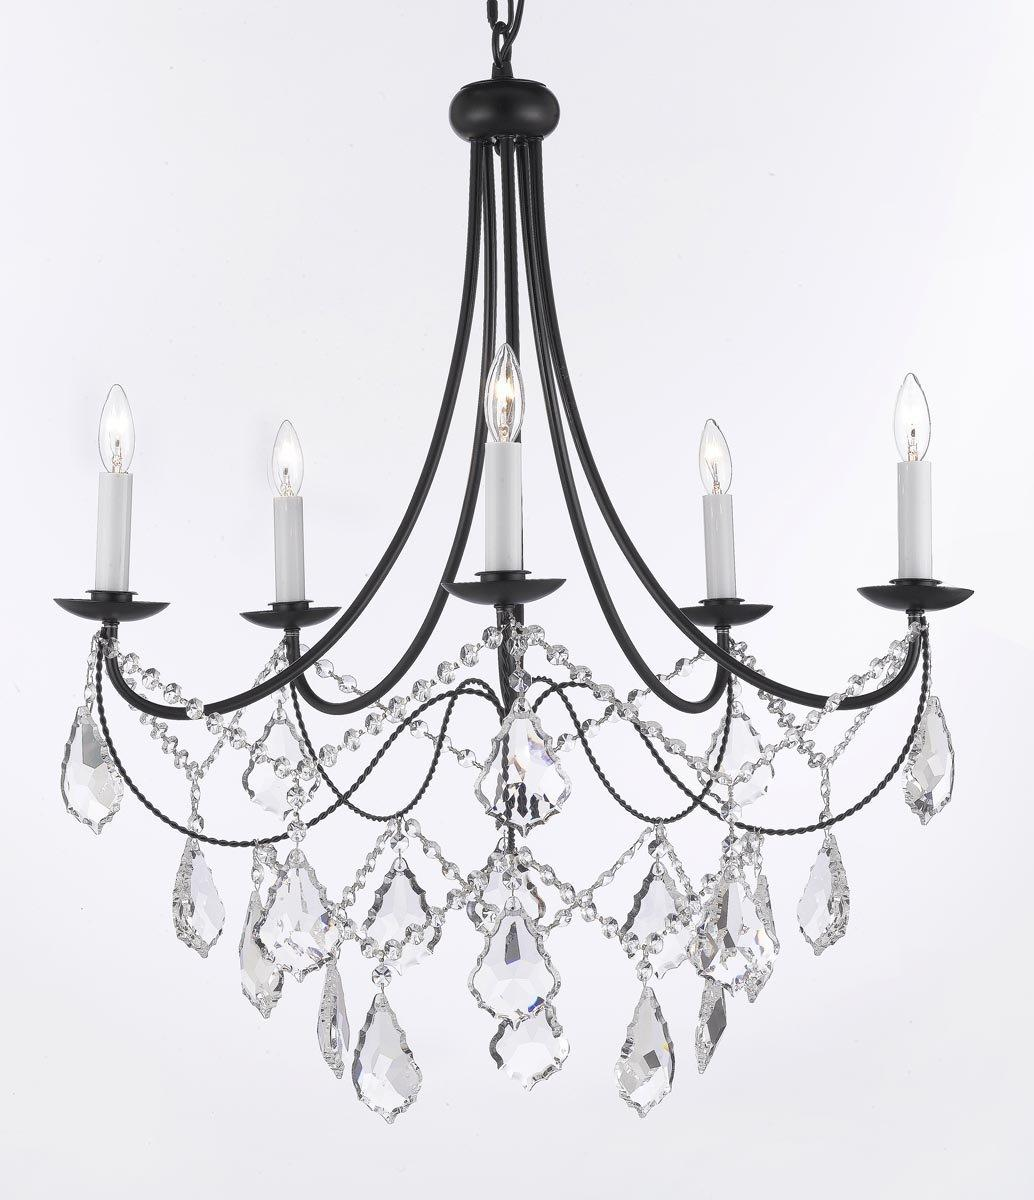 Empress crystal wrought iron chandelier lighting h22 5 x w26